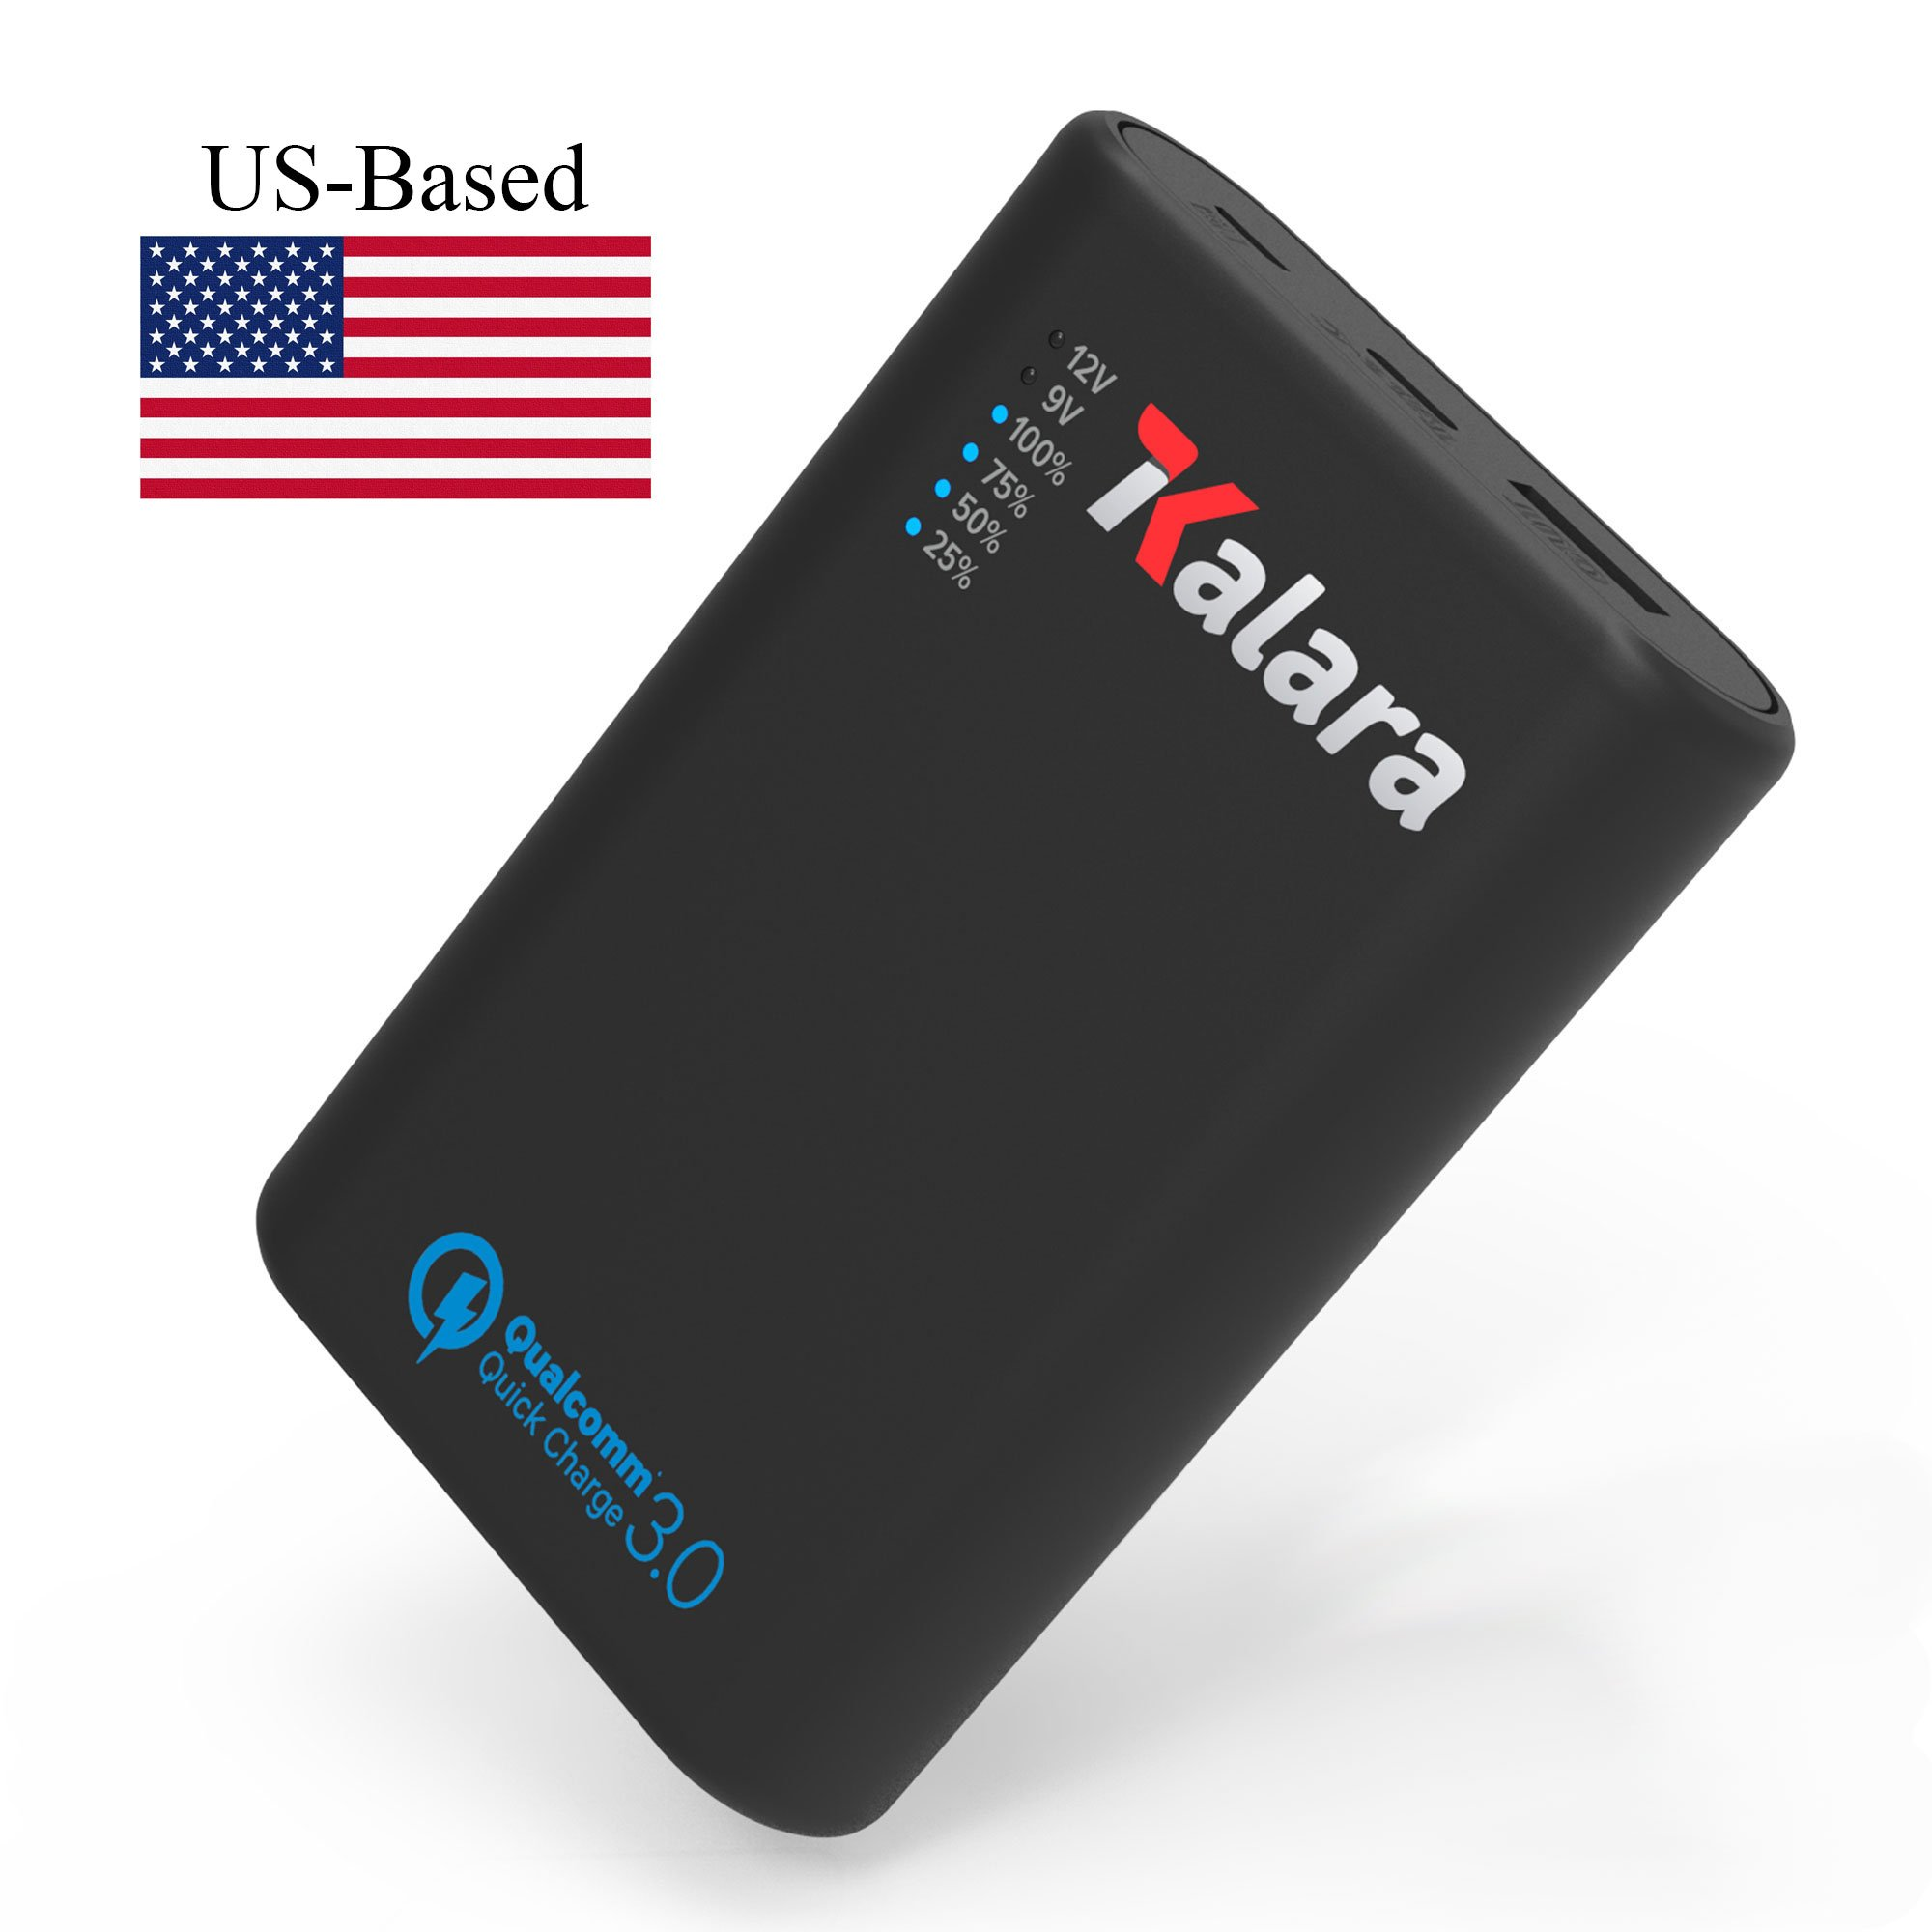 US-based: Kalara 10000 mAh Portable Charger Power Bank - pocket sized, fast charger (high-speed QC 3.0), durable (bike, ski, camp, festivals). Charges most phones 2-3 times; powers most USB devices